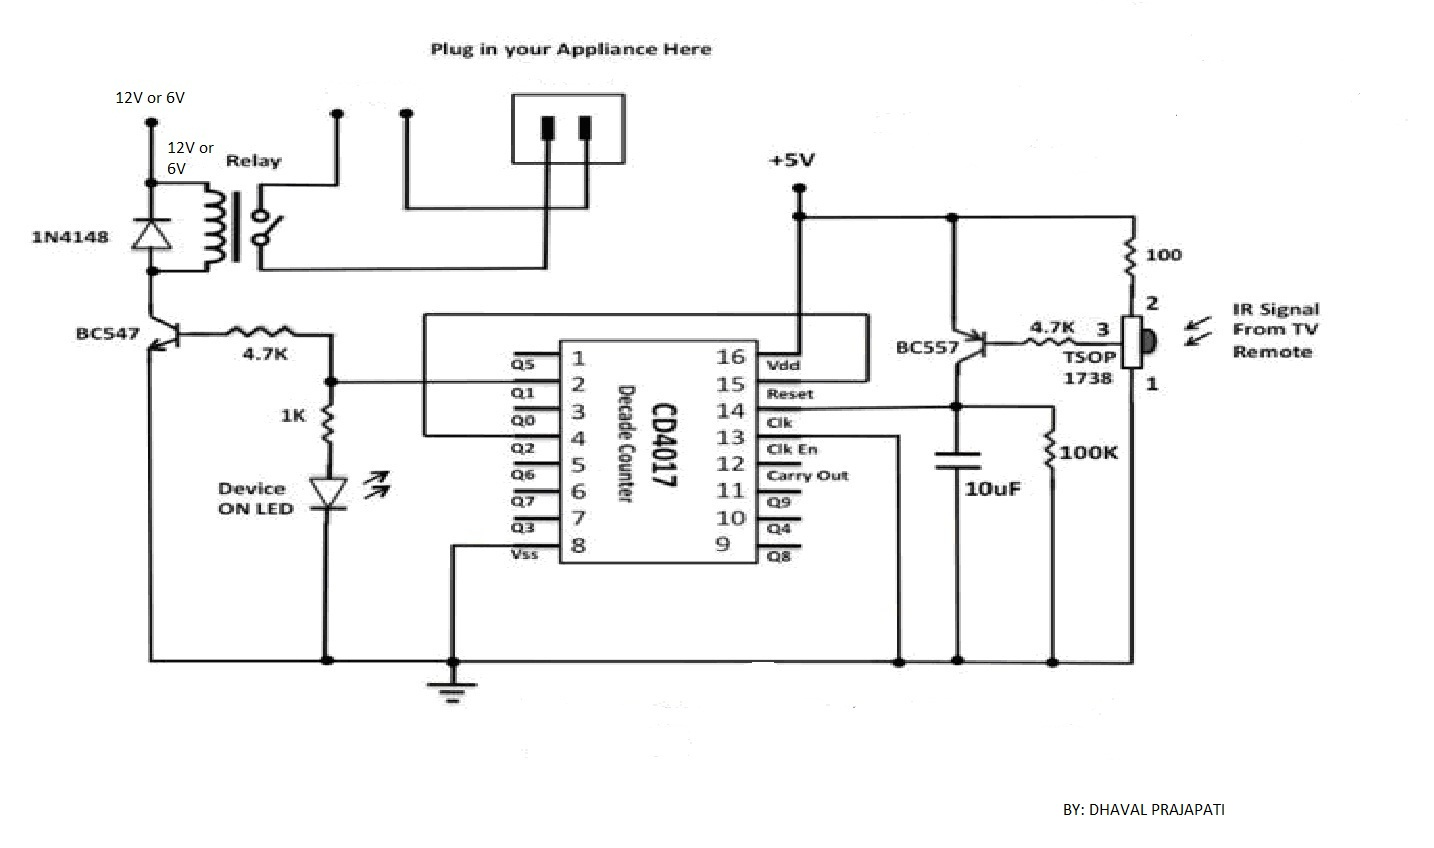 7805 ic pin diagram